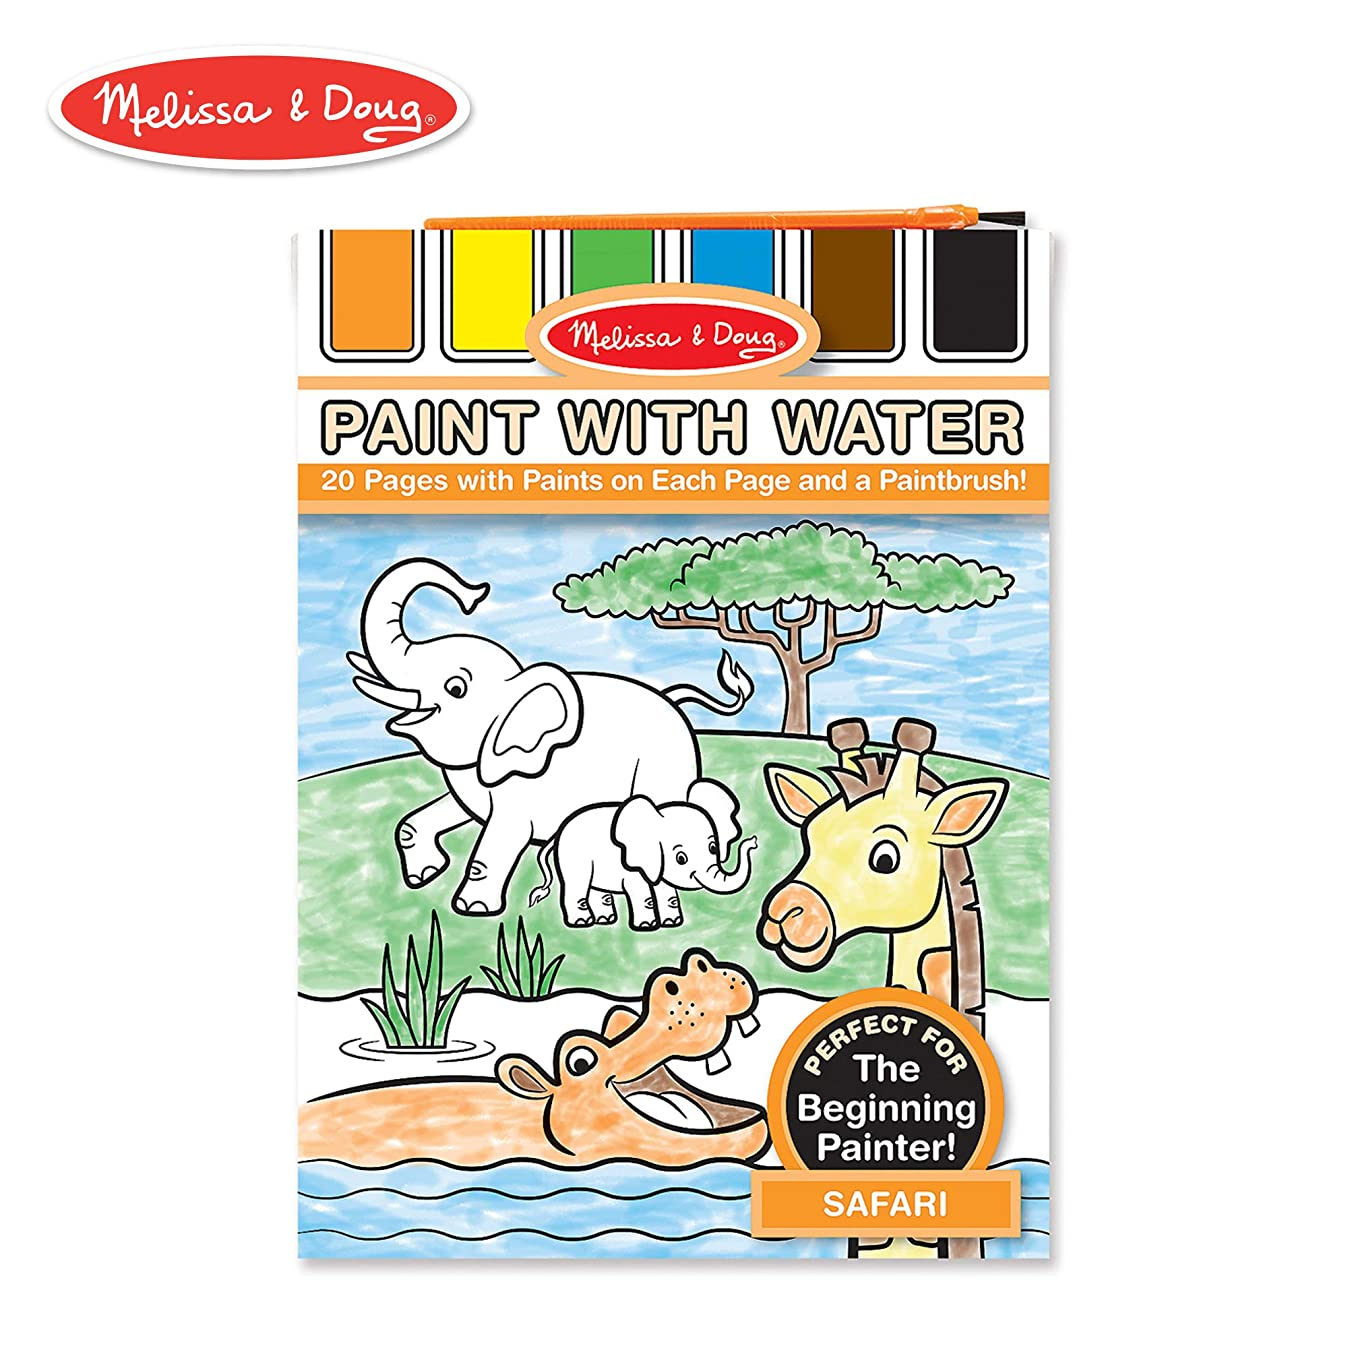 Melissa & Doug Paint With Water Activity Book - Safari (20 Pages) n4444791579